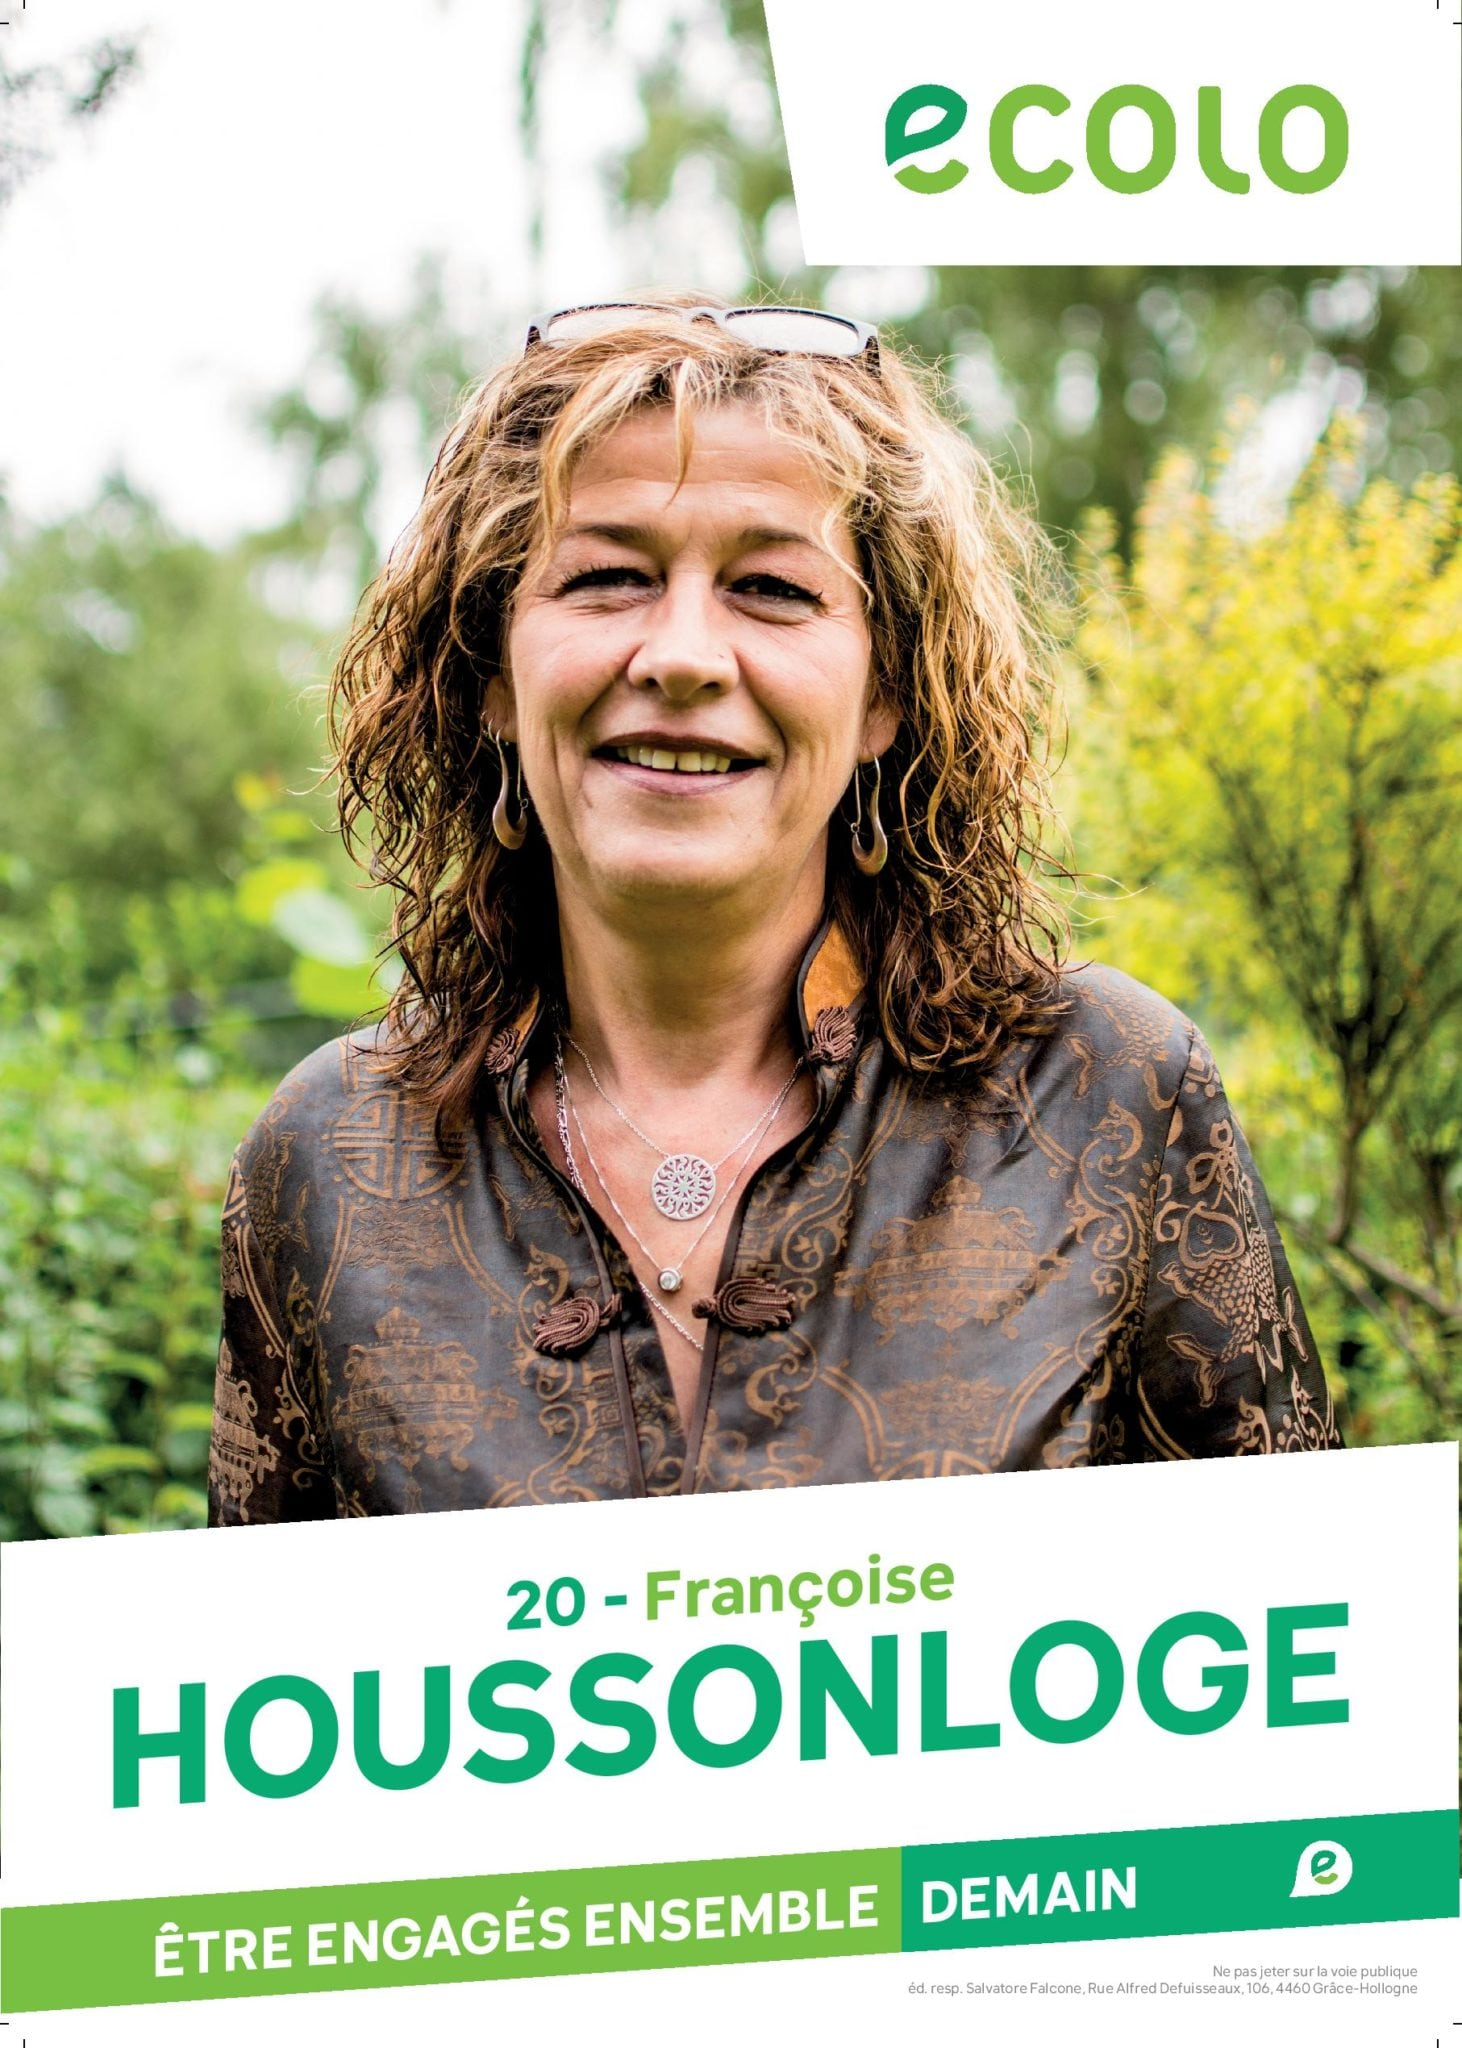 Françoise HOUSSONLOGE